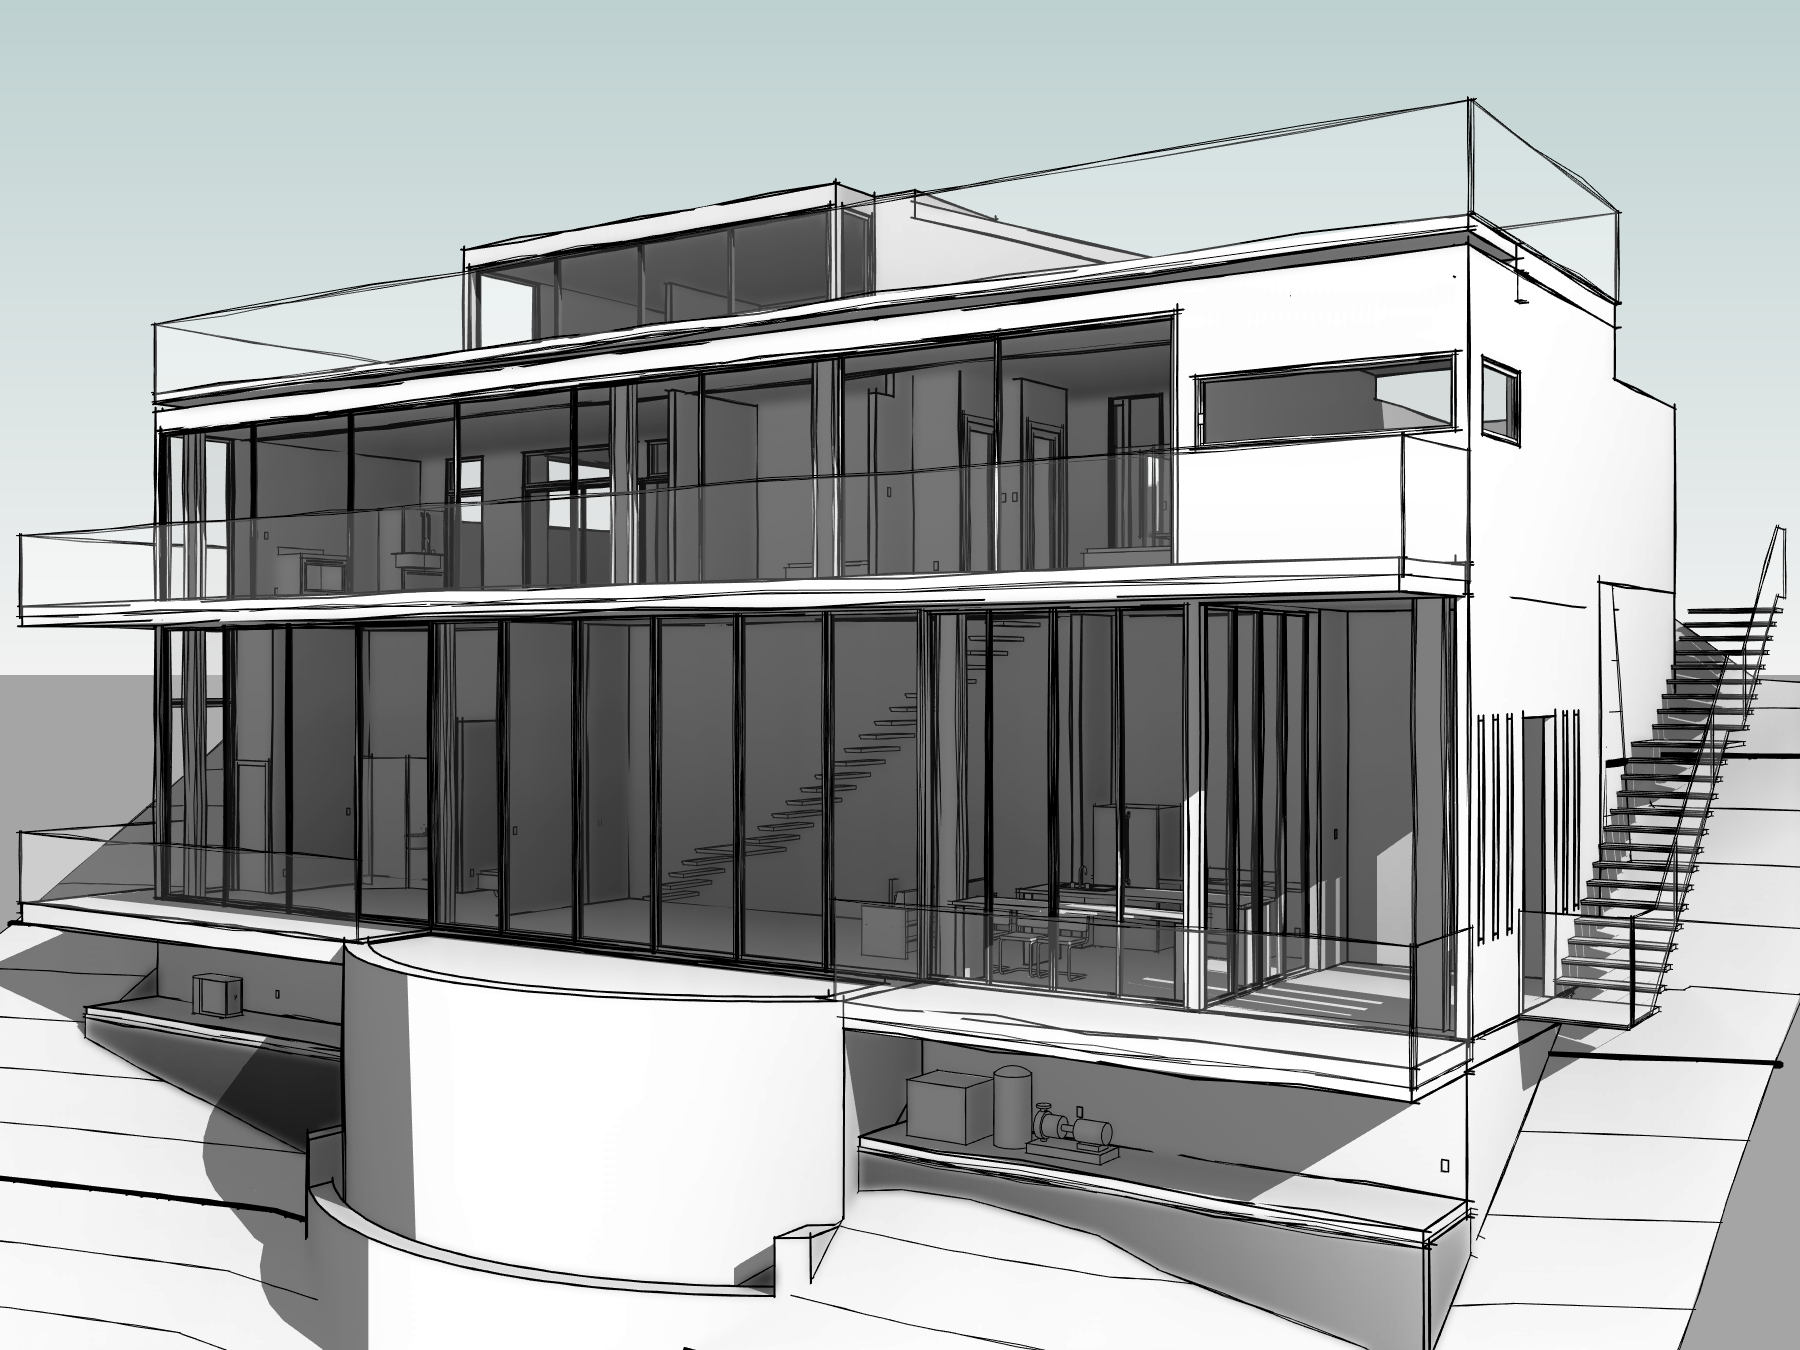 3D Image: Proposed.